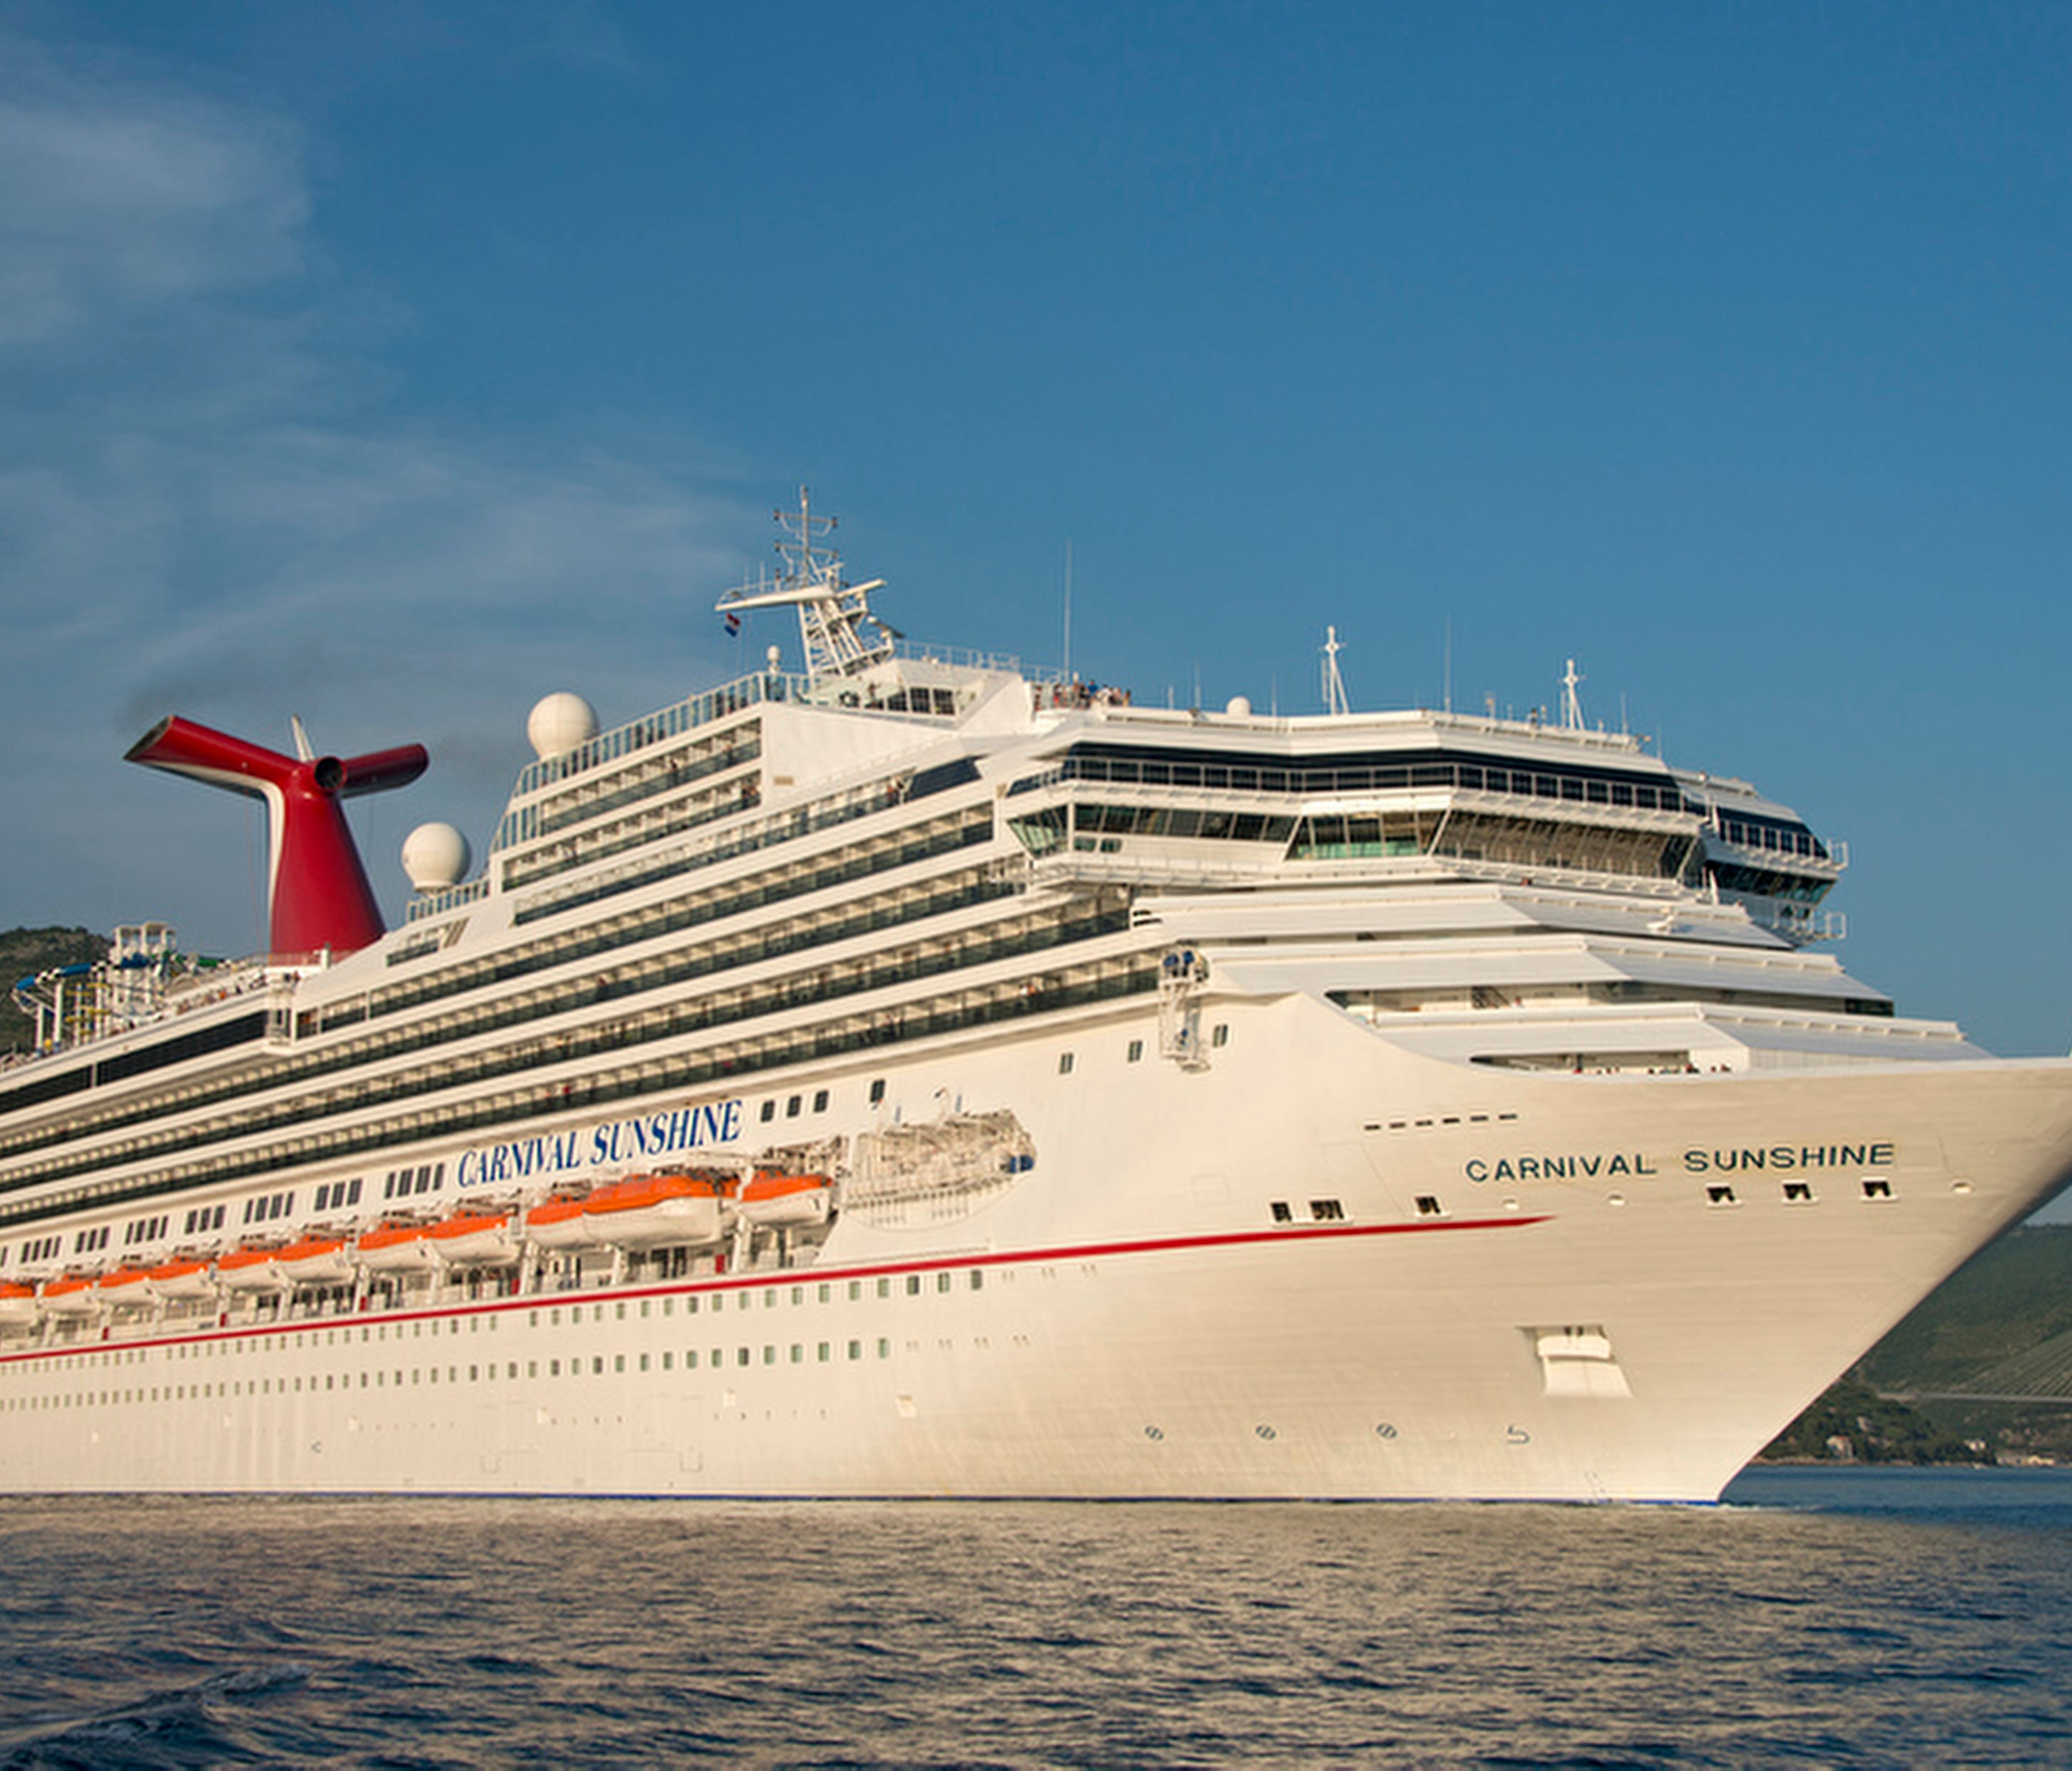 The 102,853-ton Carnival Sunshine is the only member of Carnival's Sunshine Class of ships. It originally debuted in 1996 as Carnival Destiny but was renamed in 2013 following a massive makeover. At the time of its debut, it was the largest cruise sh